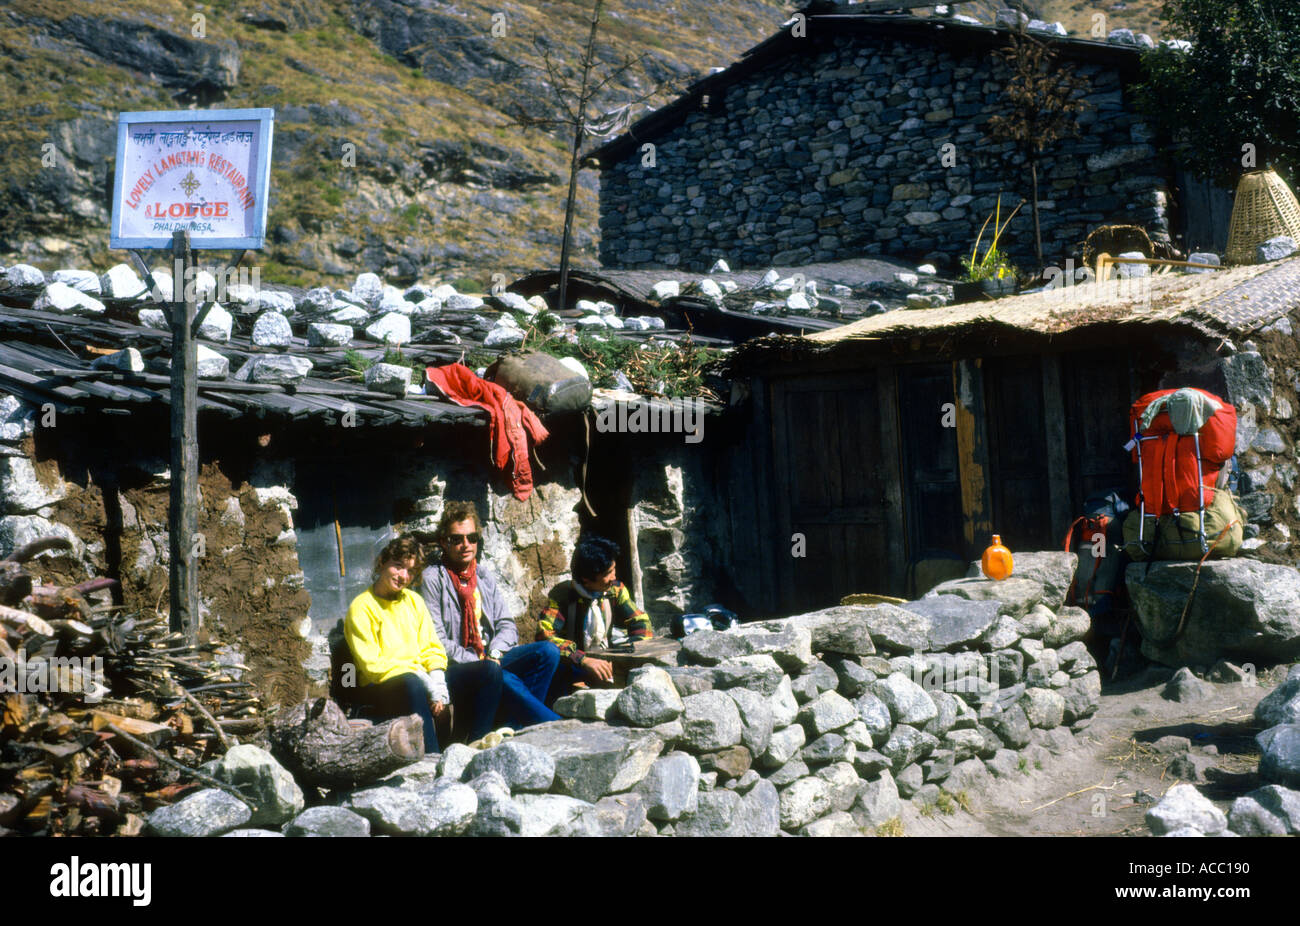 Two hikers rest outside a trekking lodge teahouse Langtang Valley Nepal - Stock Image